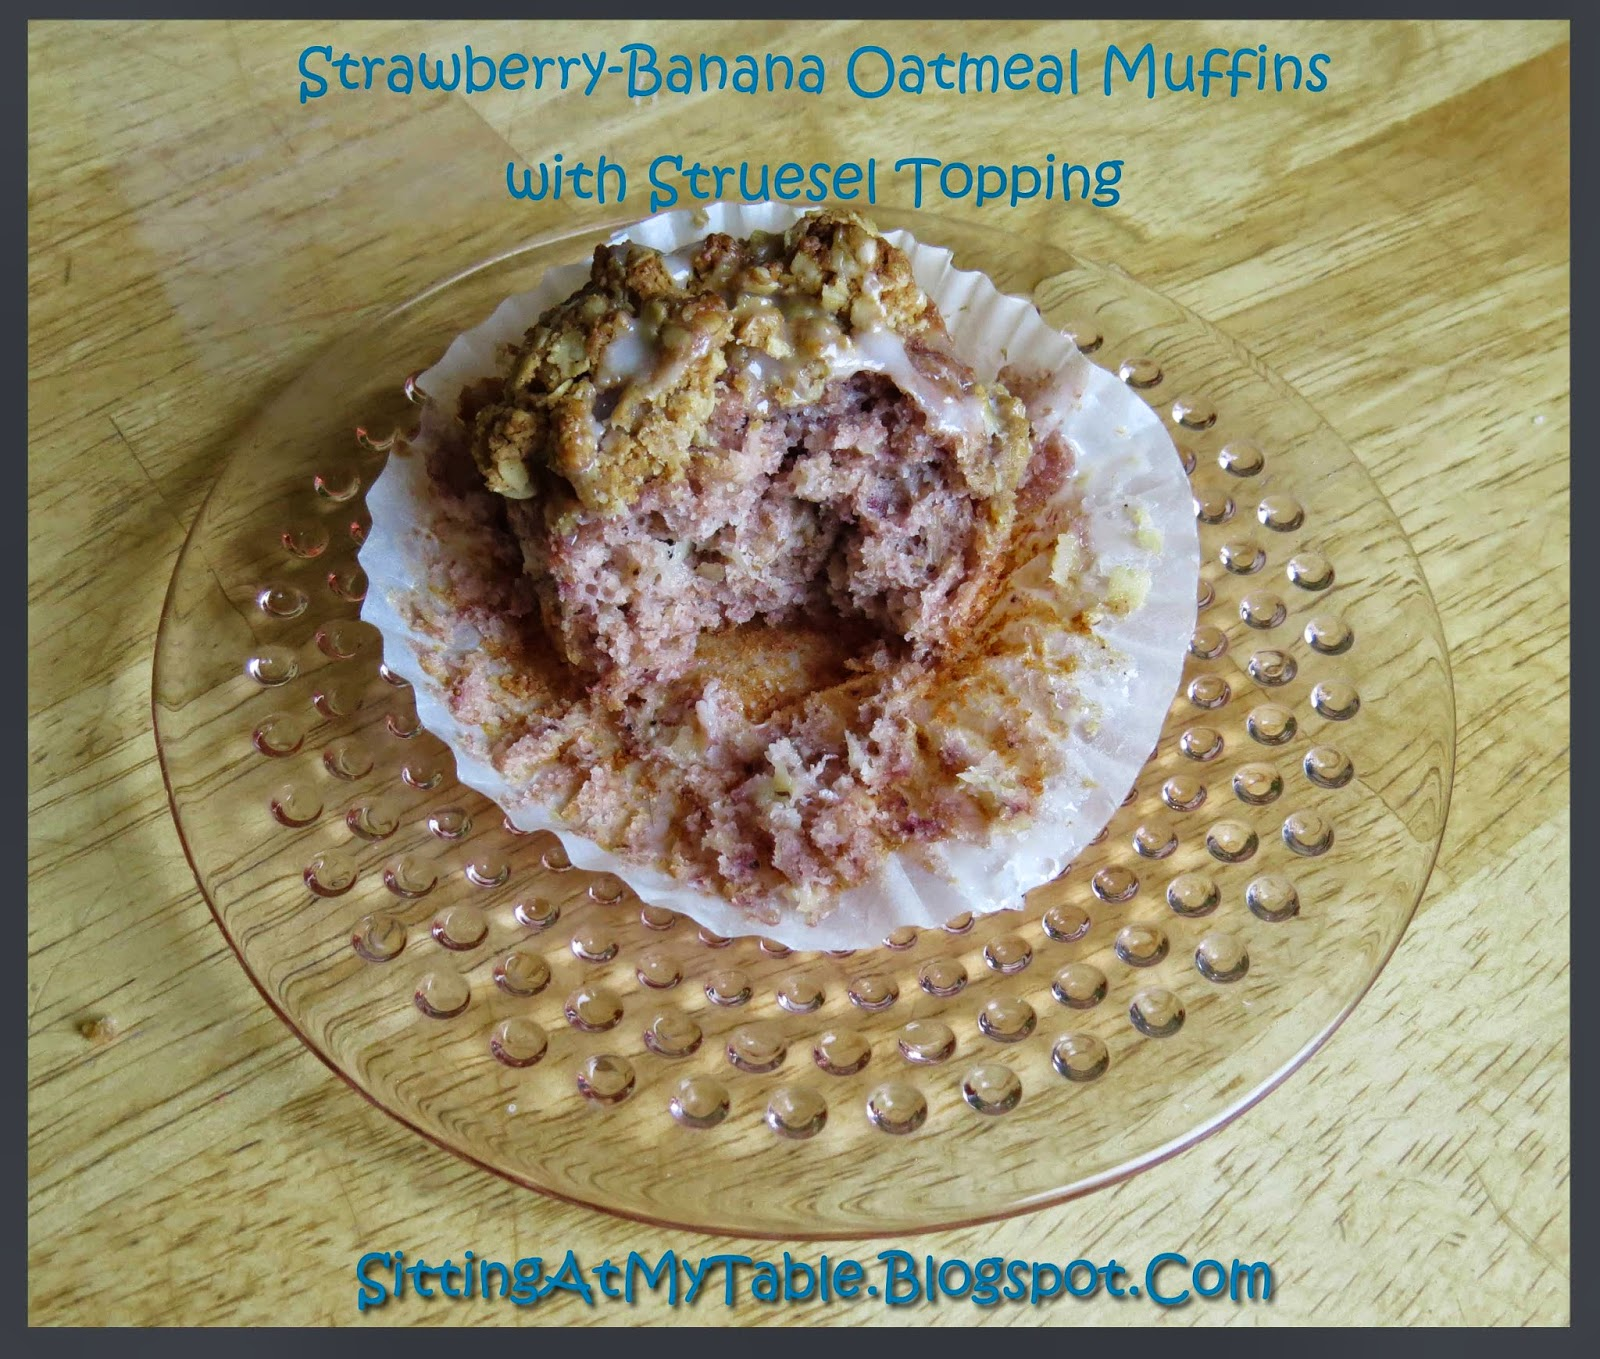 Strawberry-Banana Oatmeal Muffins